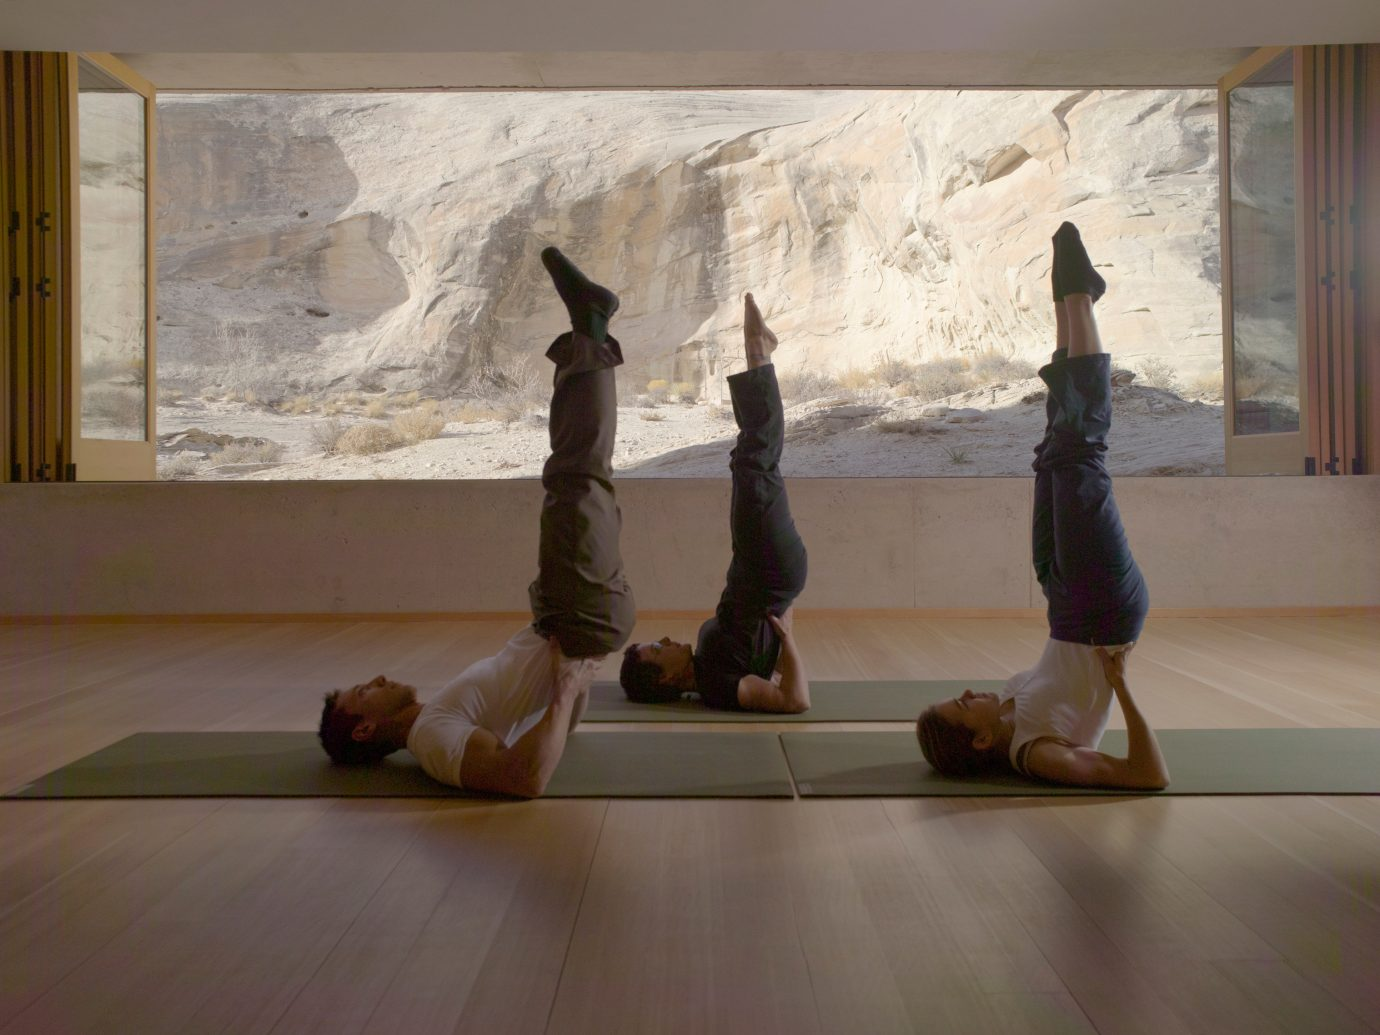 Trip Ideas wall indoor window sports physical fitness human positions performance art yoga Fireplace